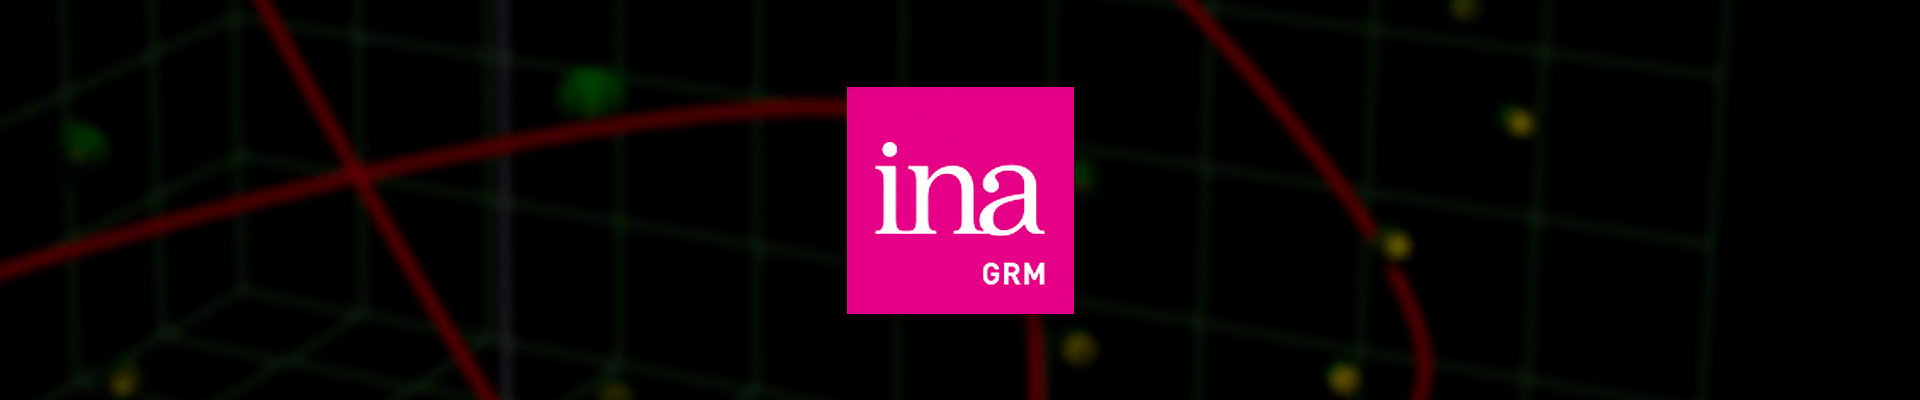 Ina GRM Banner